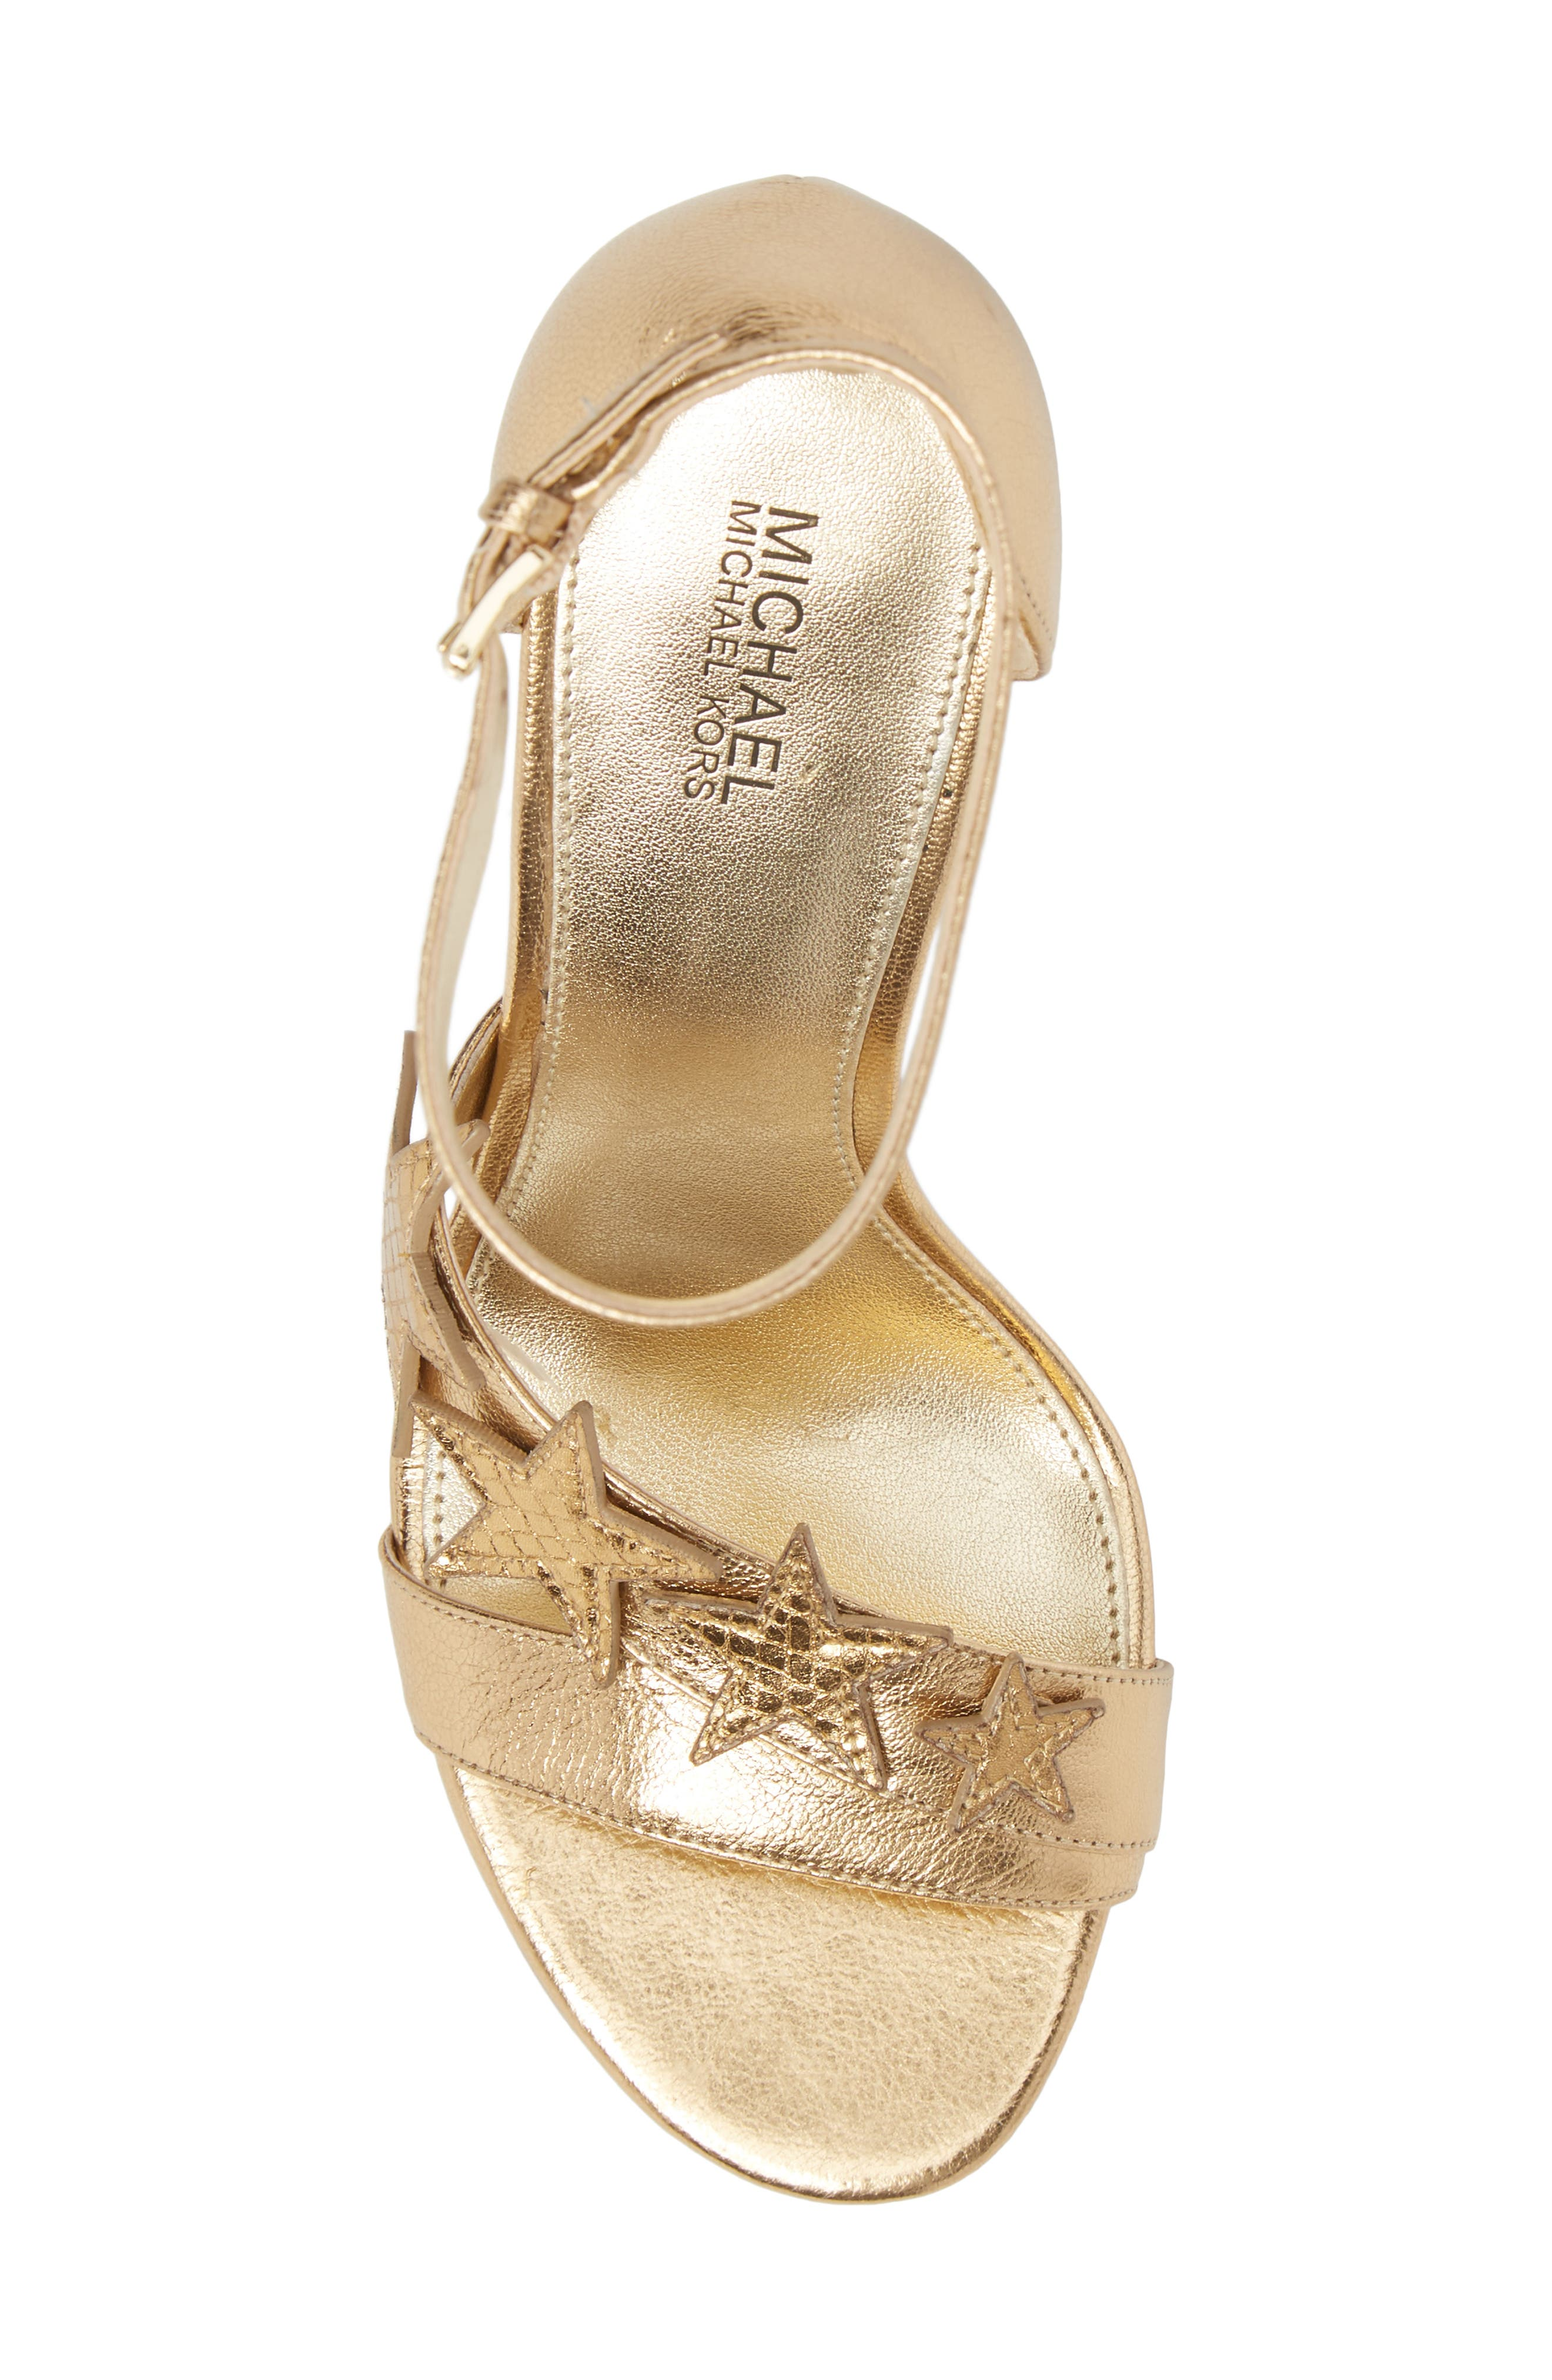 Lexie Sandal,                             Alternate thumbnail 5, color,                             Pale Gold Nappa Leather